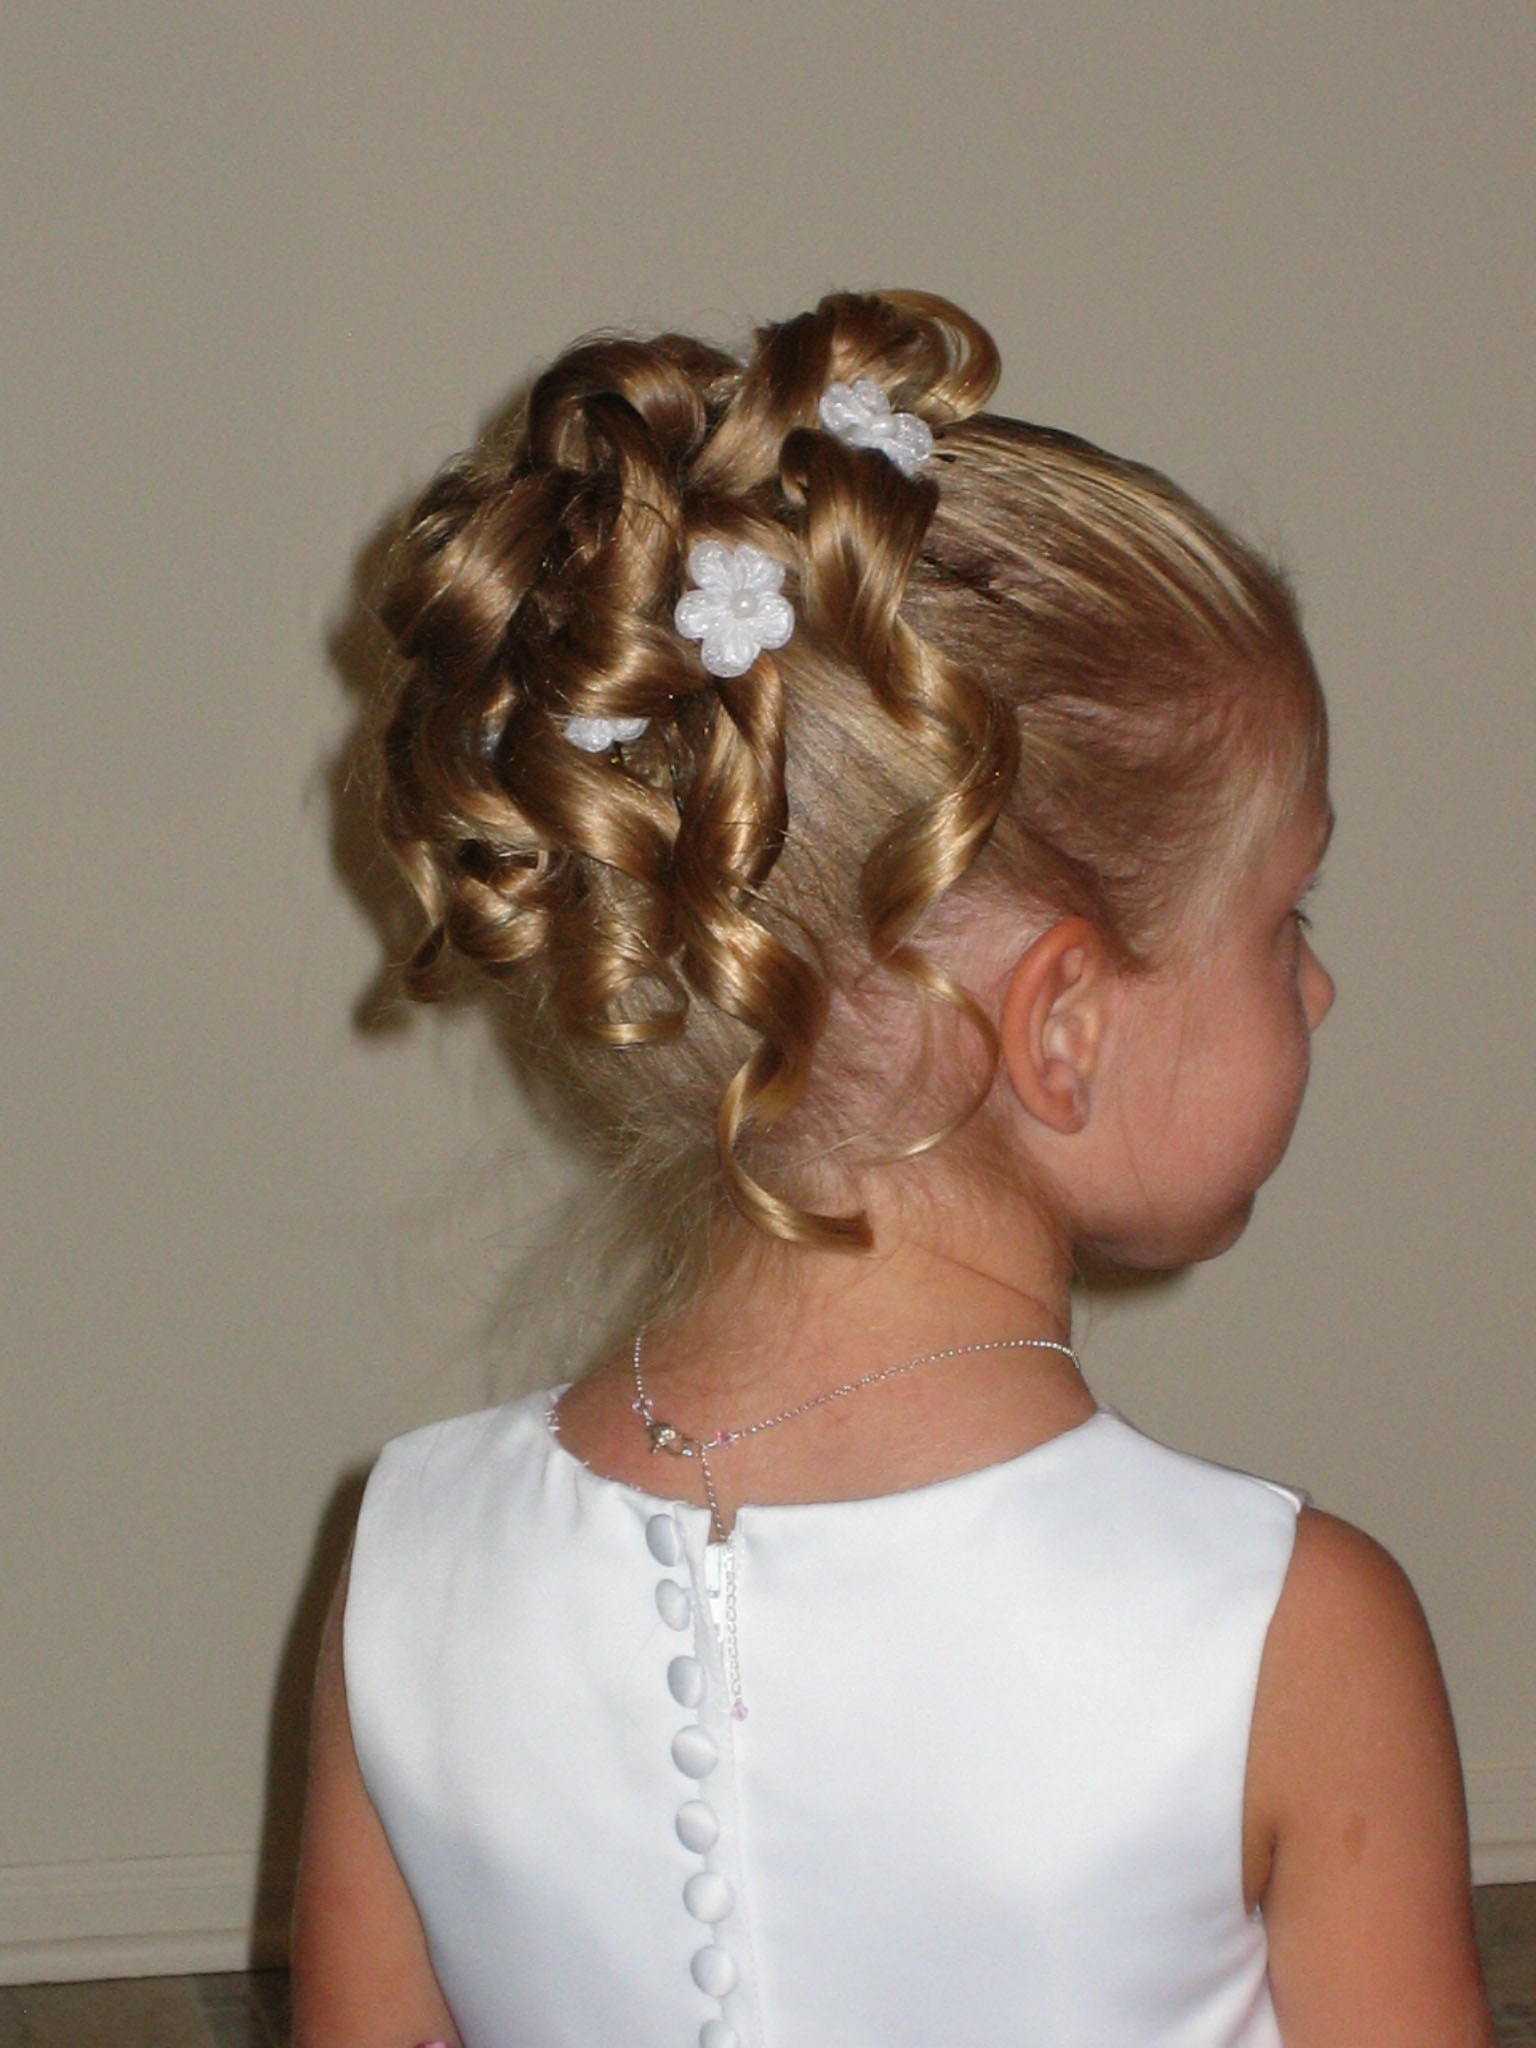 Hairstyles For Flower Girls  Short Hairstyles for Flower Girls